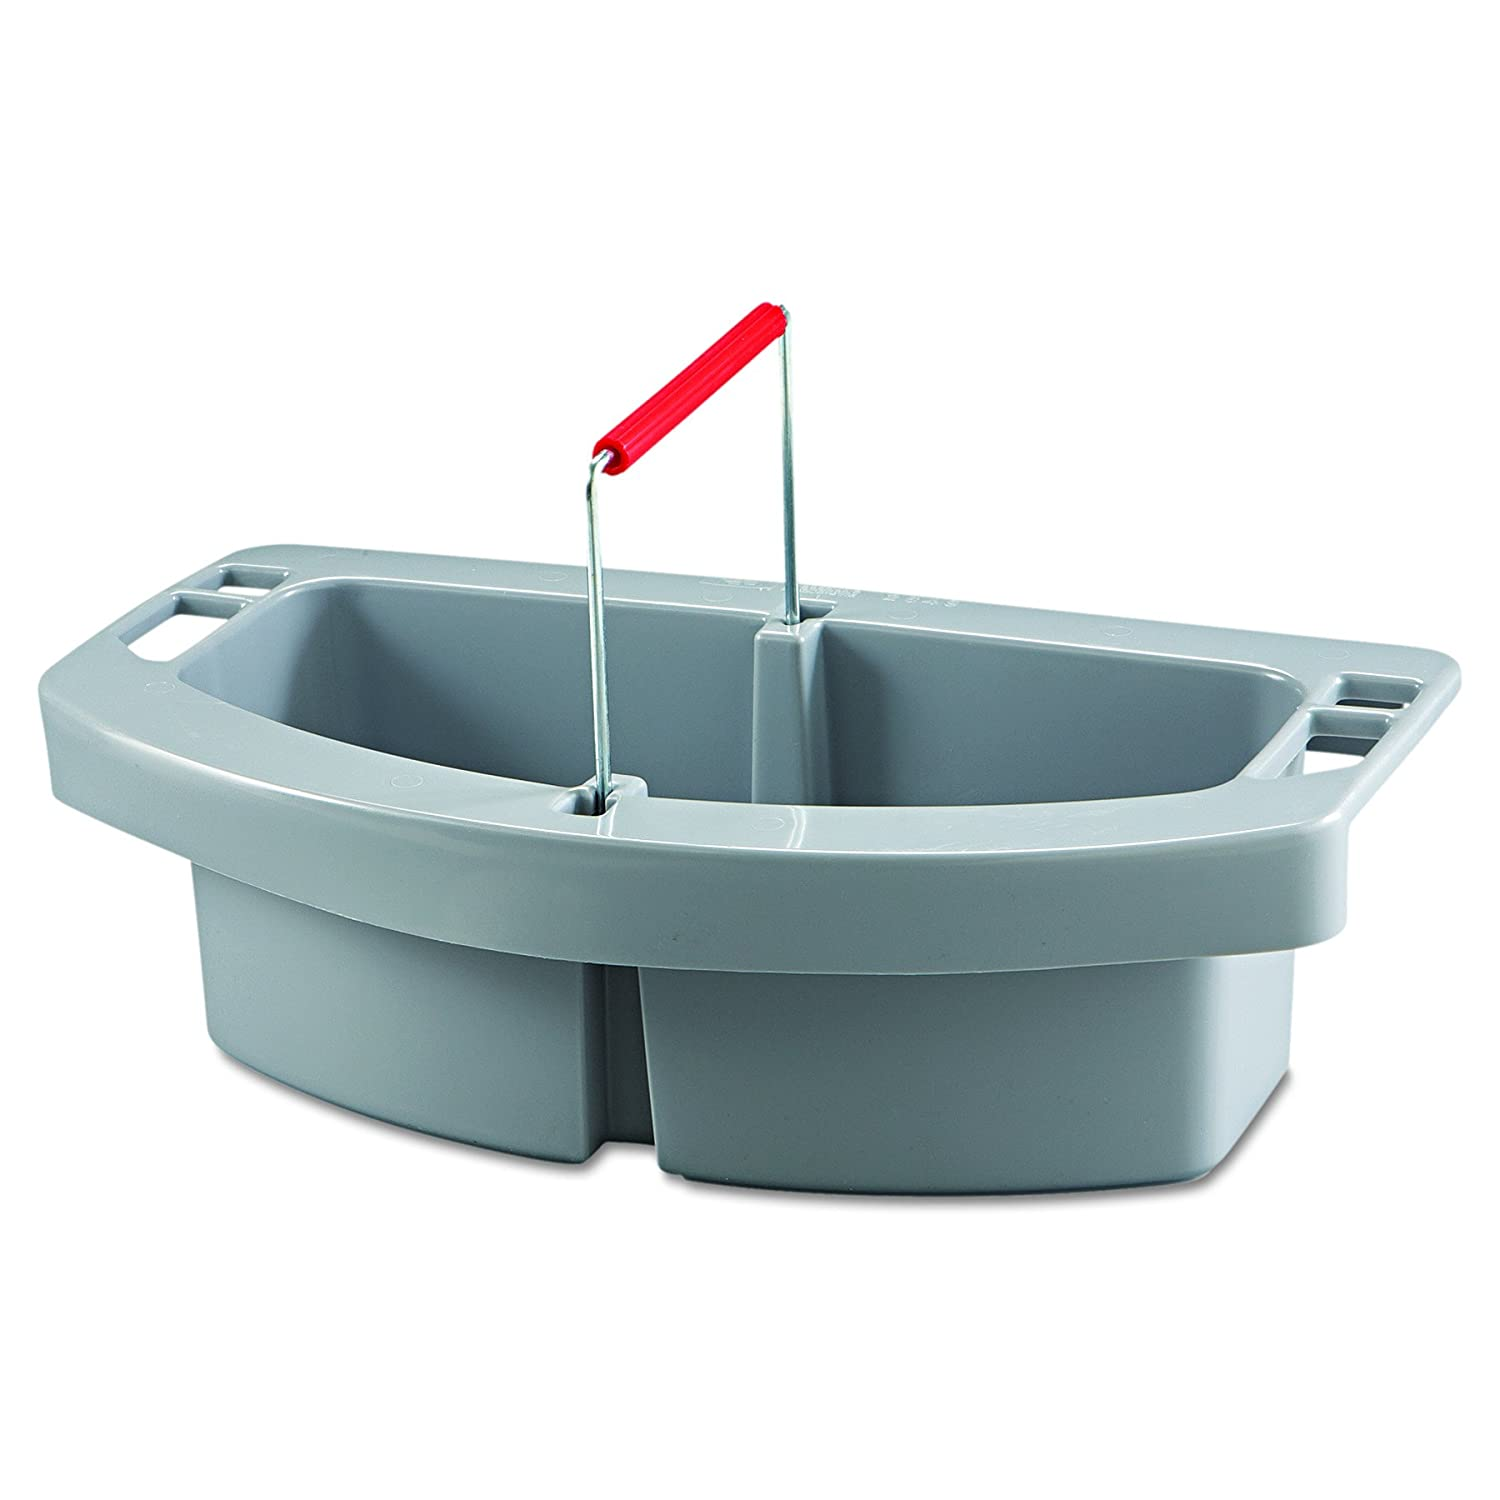 Amazon.com: Rubbermaid Commercial RCP 2649 GRA Maid Caddy, 2-Comp ...